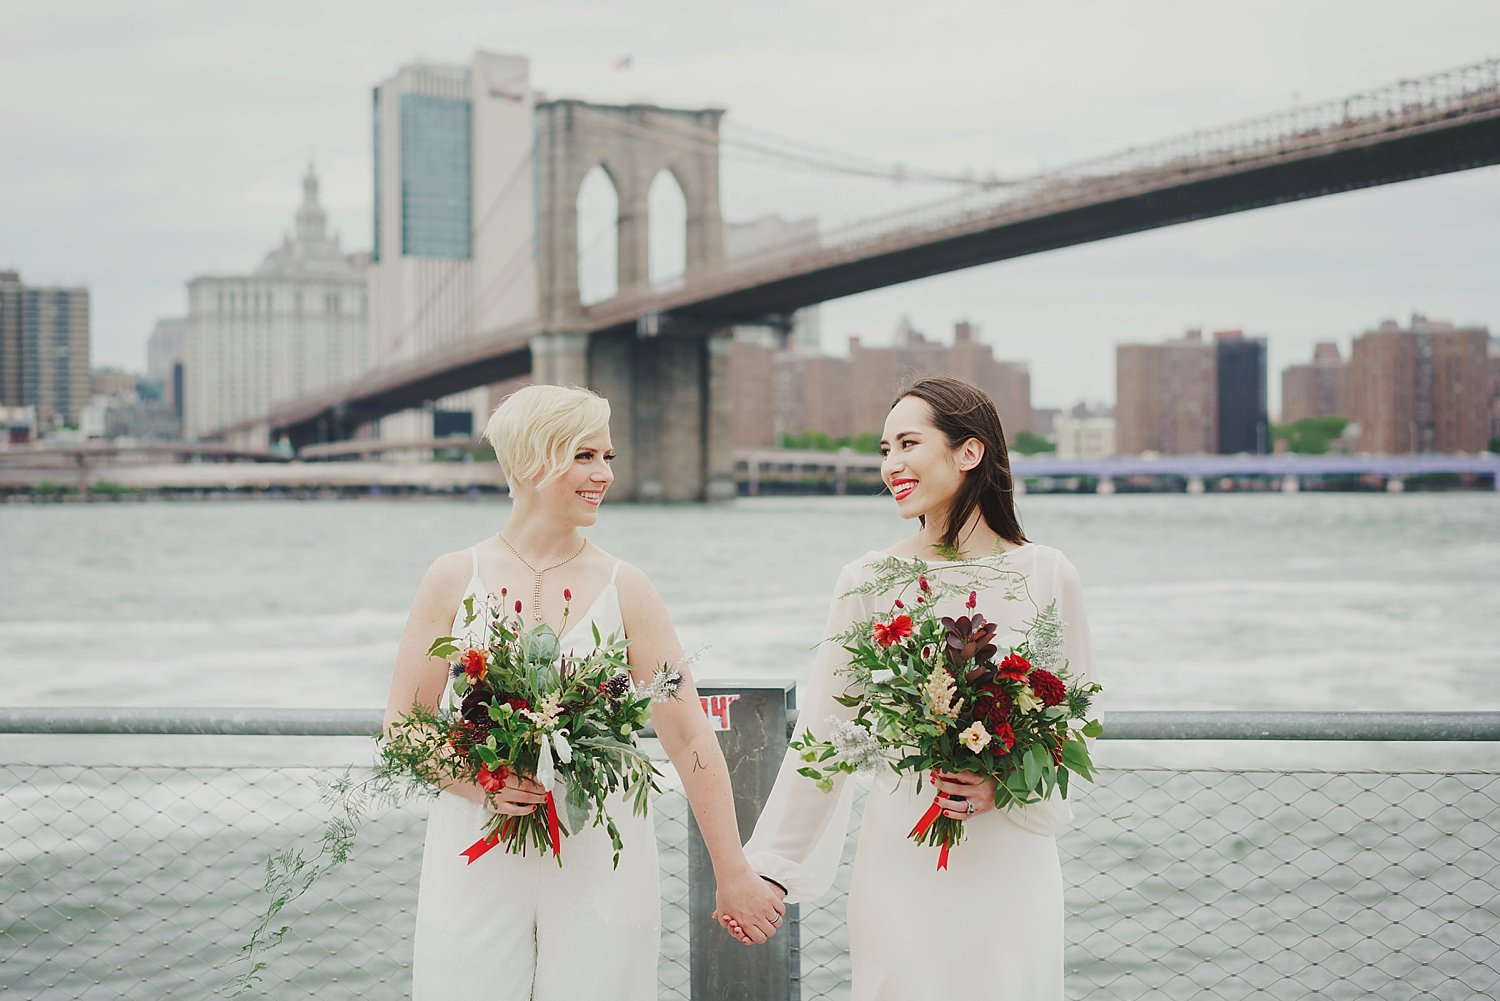 nyc-wedding-photography-nj-tri-state-cinematography-intothestory-by-moo-jae_0340.jpg